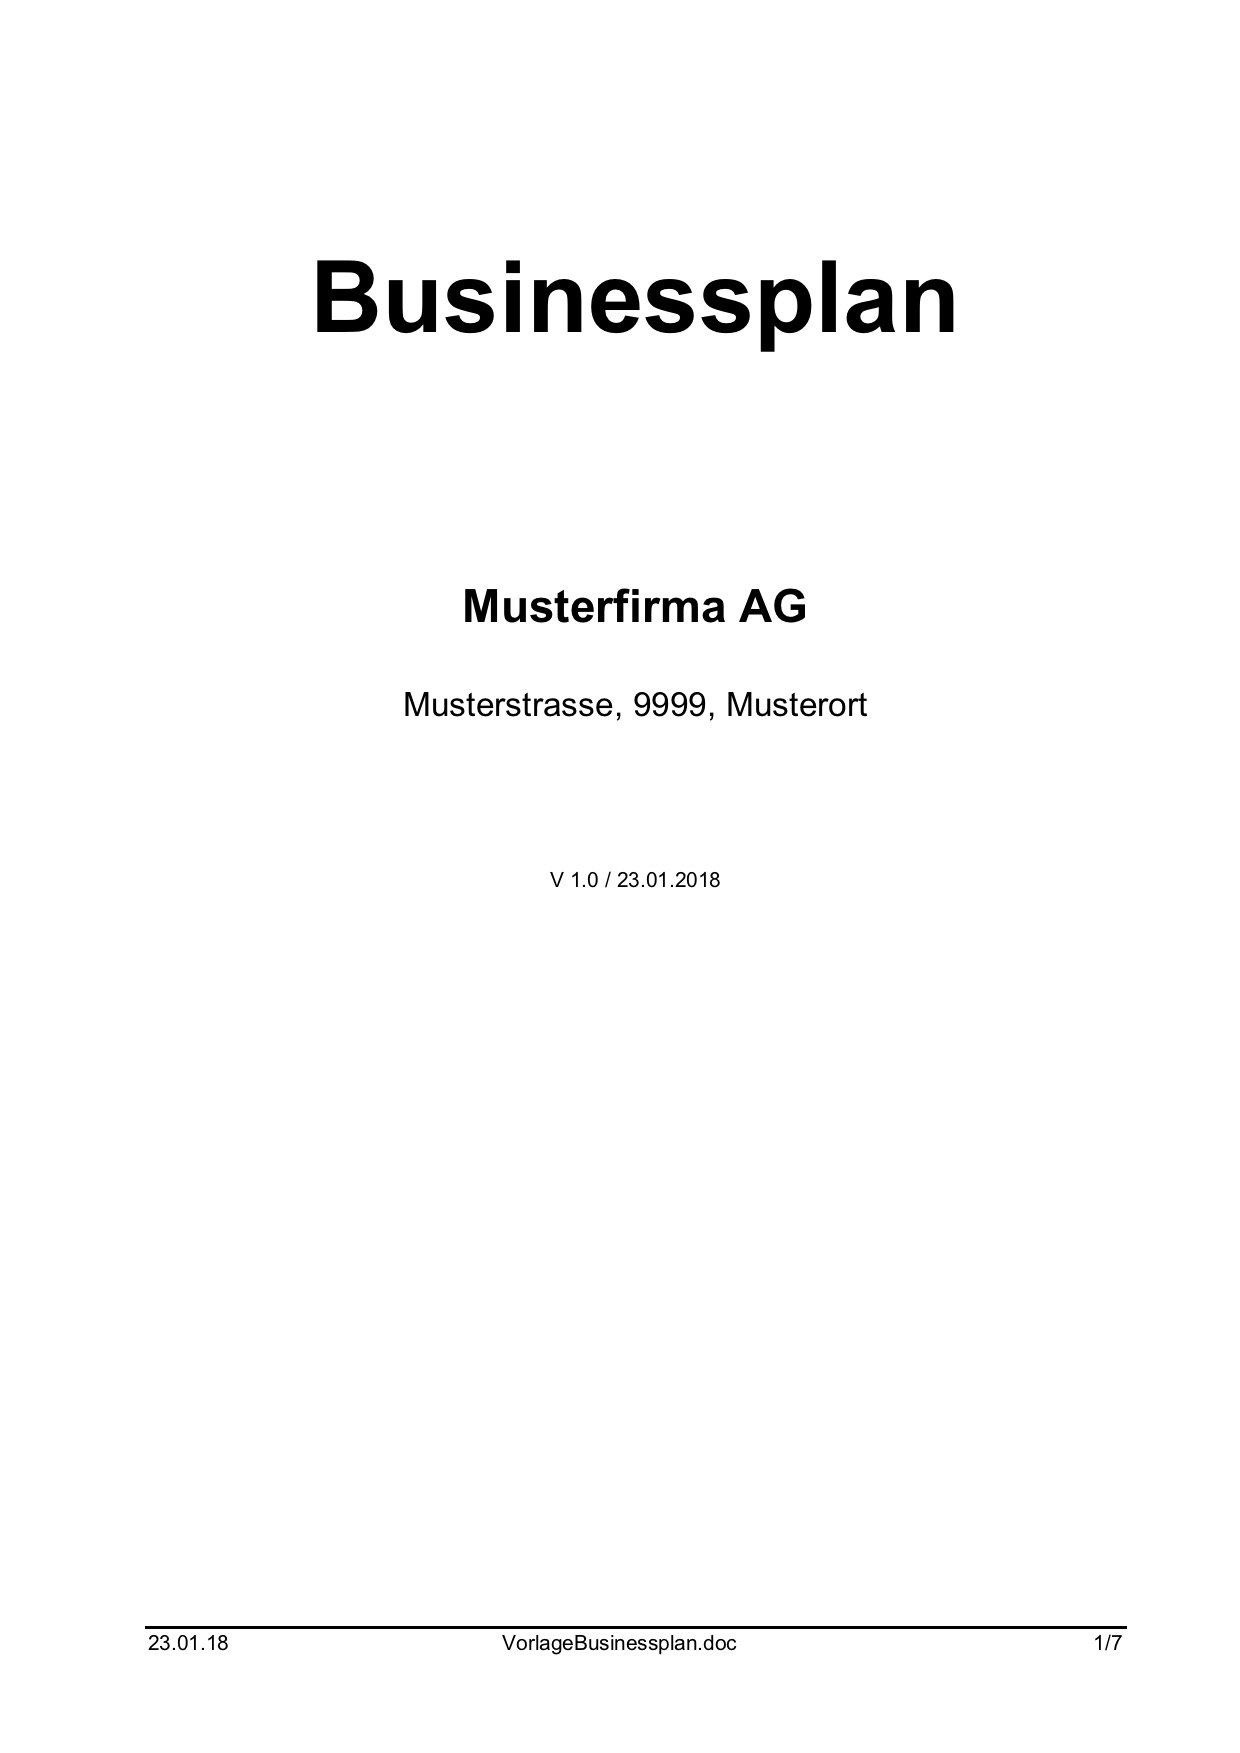 businessplan vorlage word - Businessplan Muster